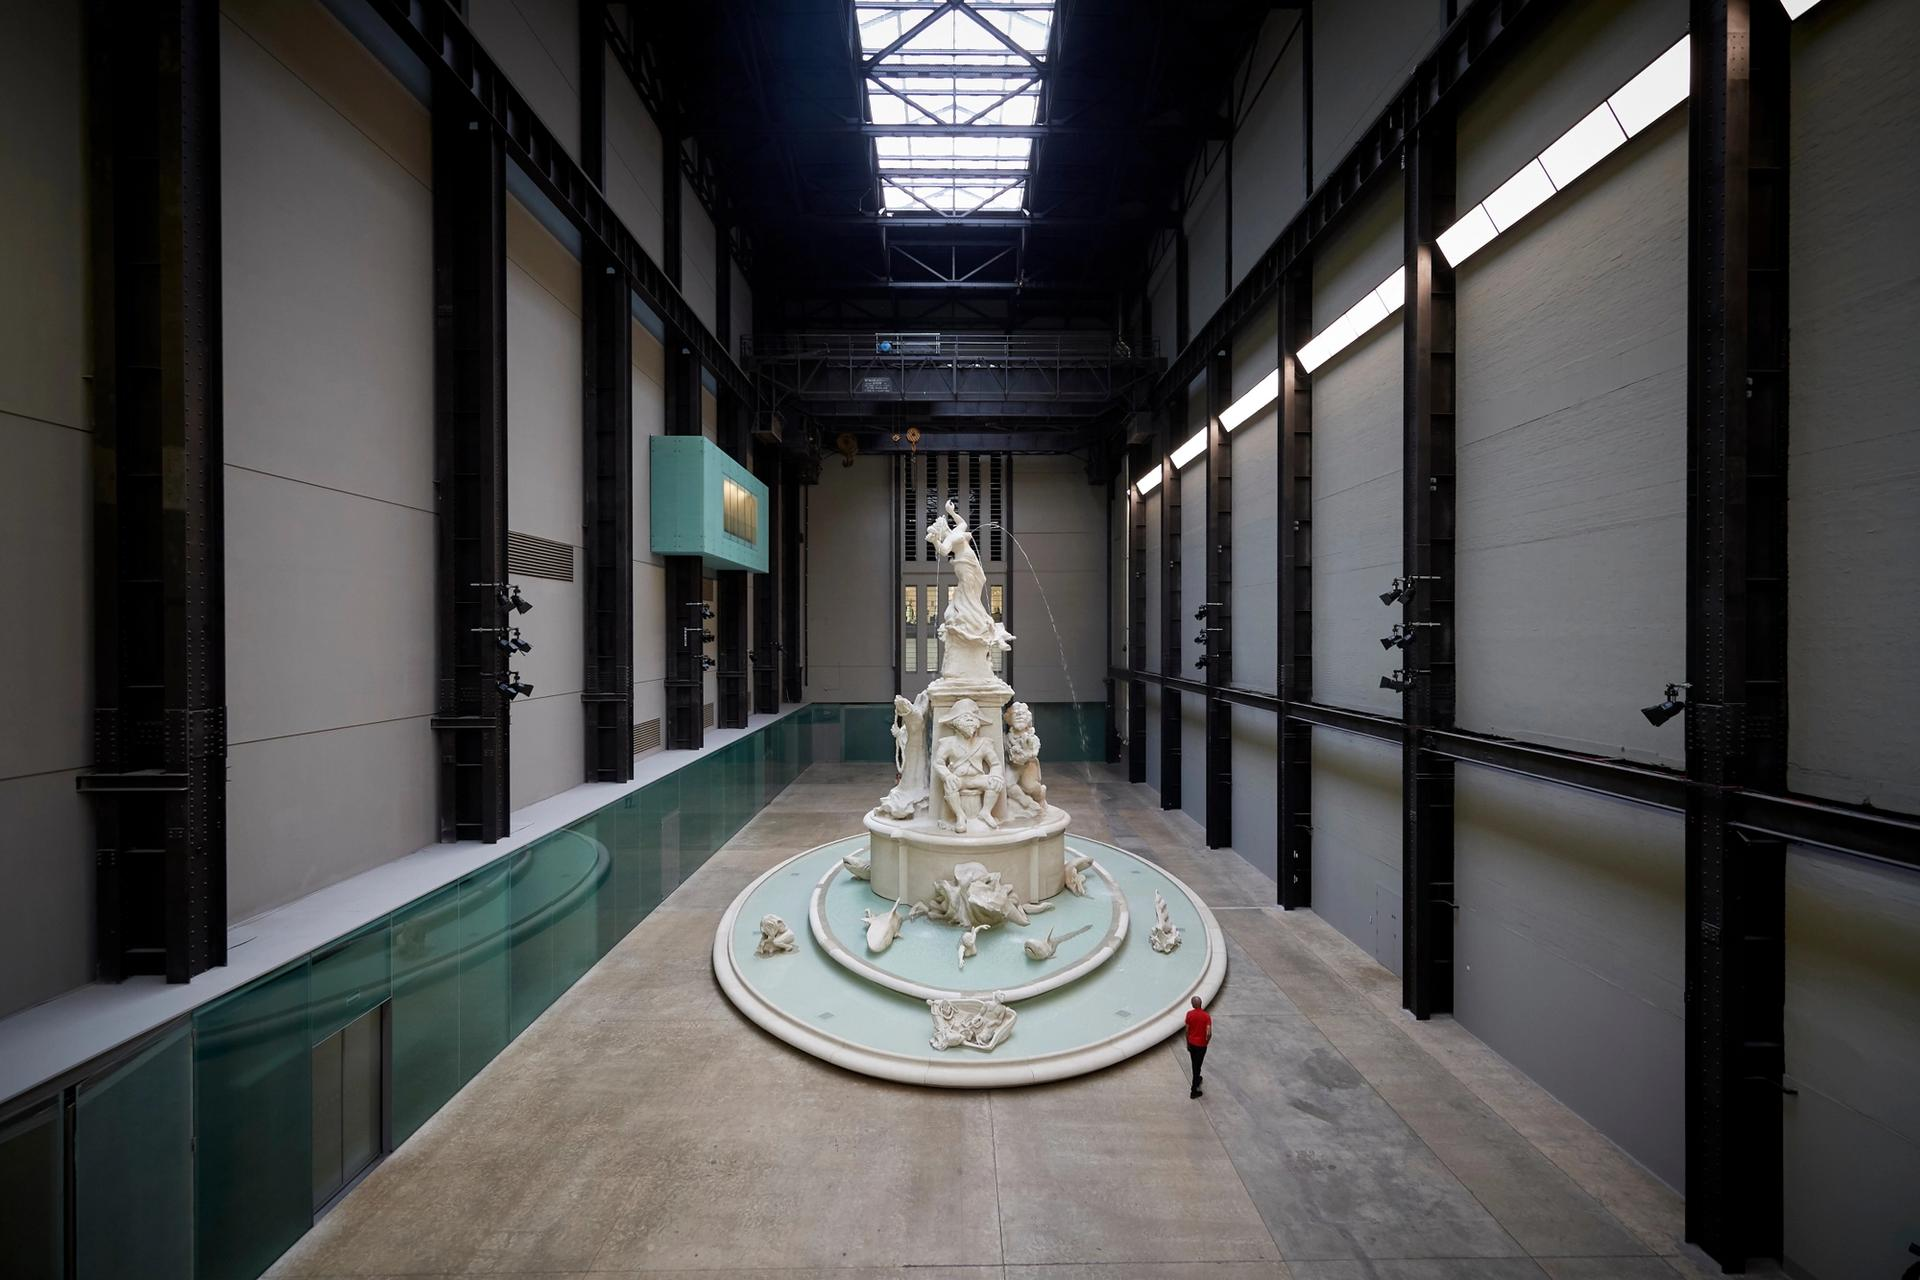 Kara Walker 's monumental fountain Fons Americanus, which was on show at Tate Modern in London, will be destroyed Photo: Ben Fisher